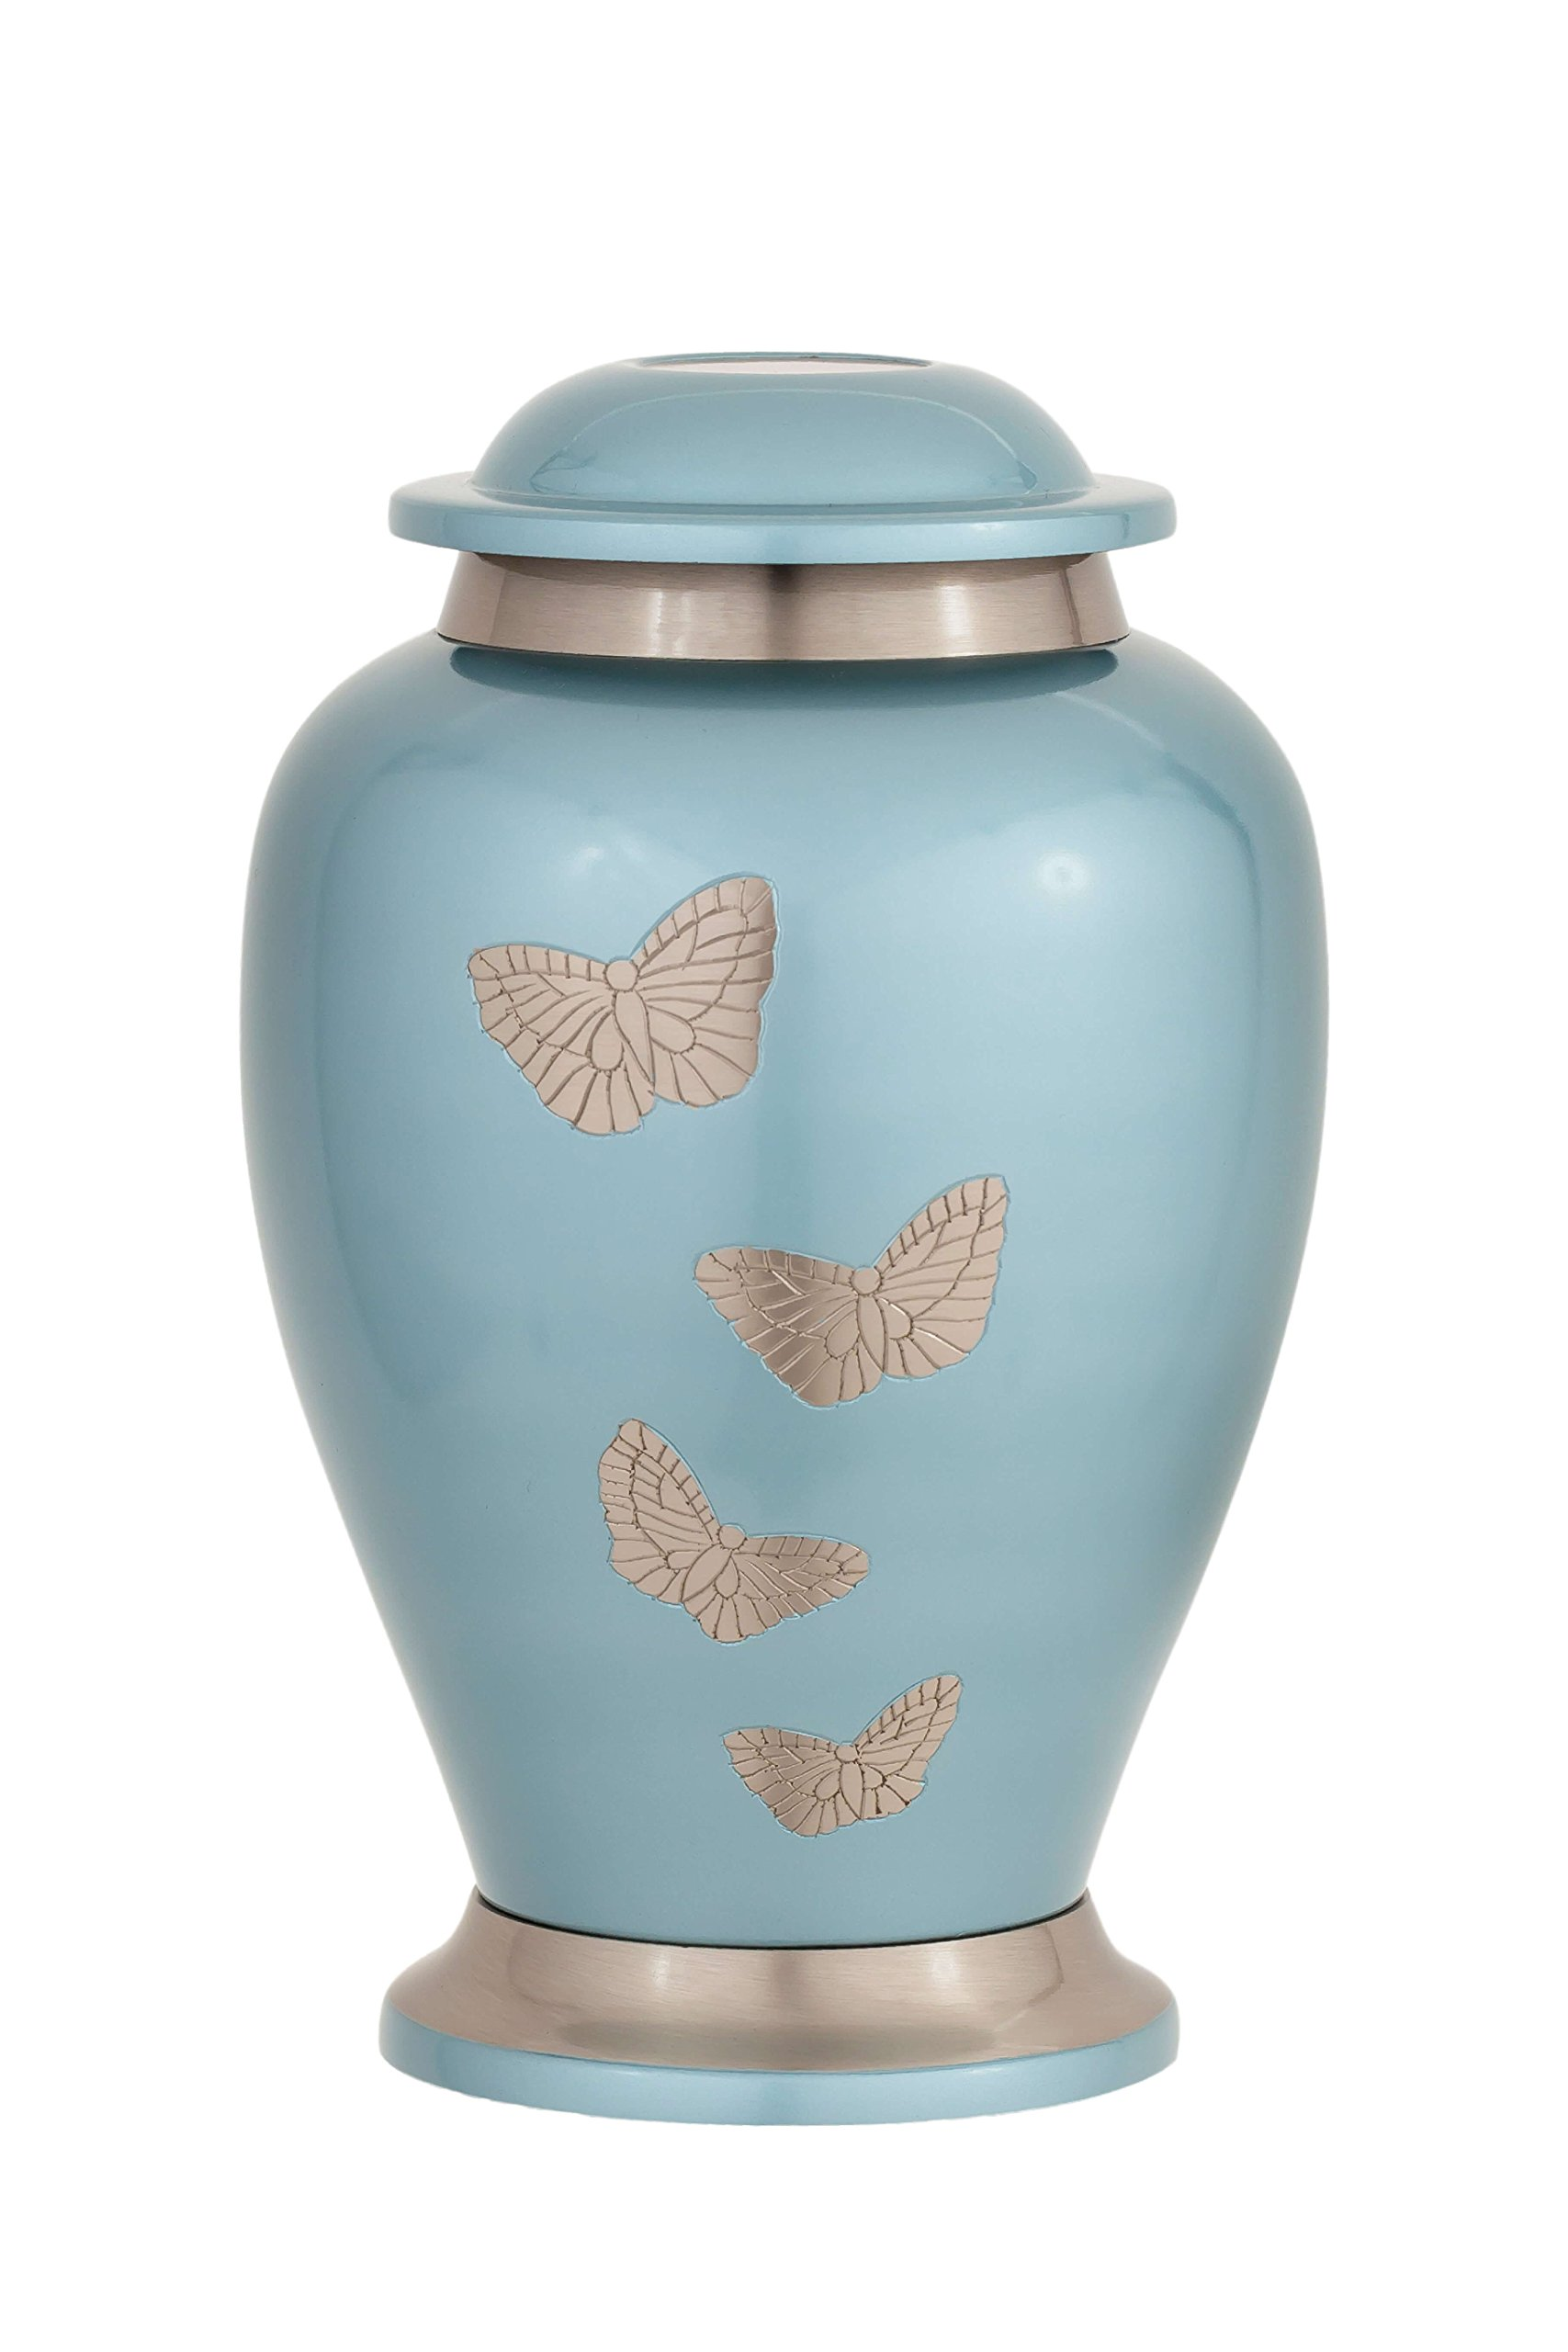 Enshrined Memorials Cremation Urn for Ashes - Apollo Series Affordable Solid Brass Metal Quality Handcrafted for Human Funeral Burial Large 10 inch, Teal with Butterflies